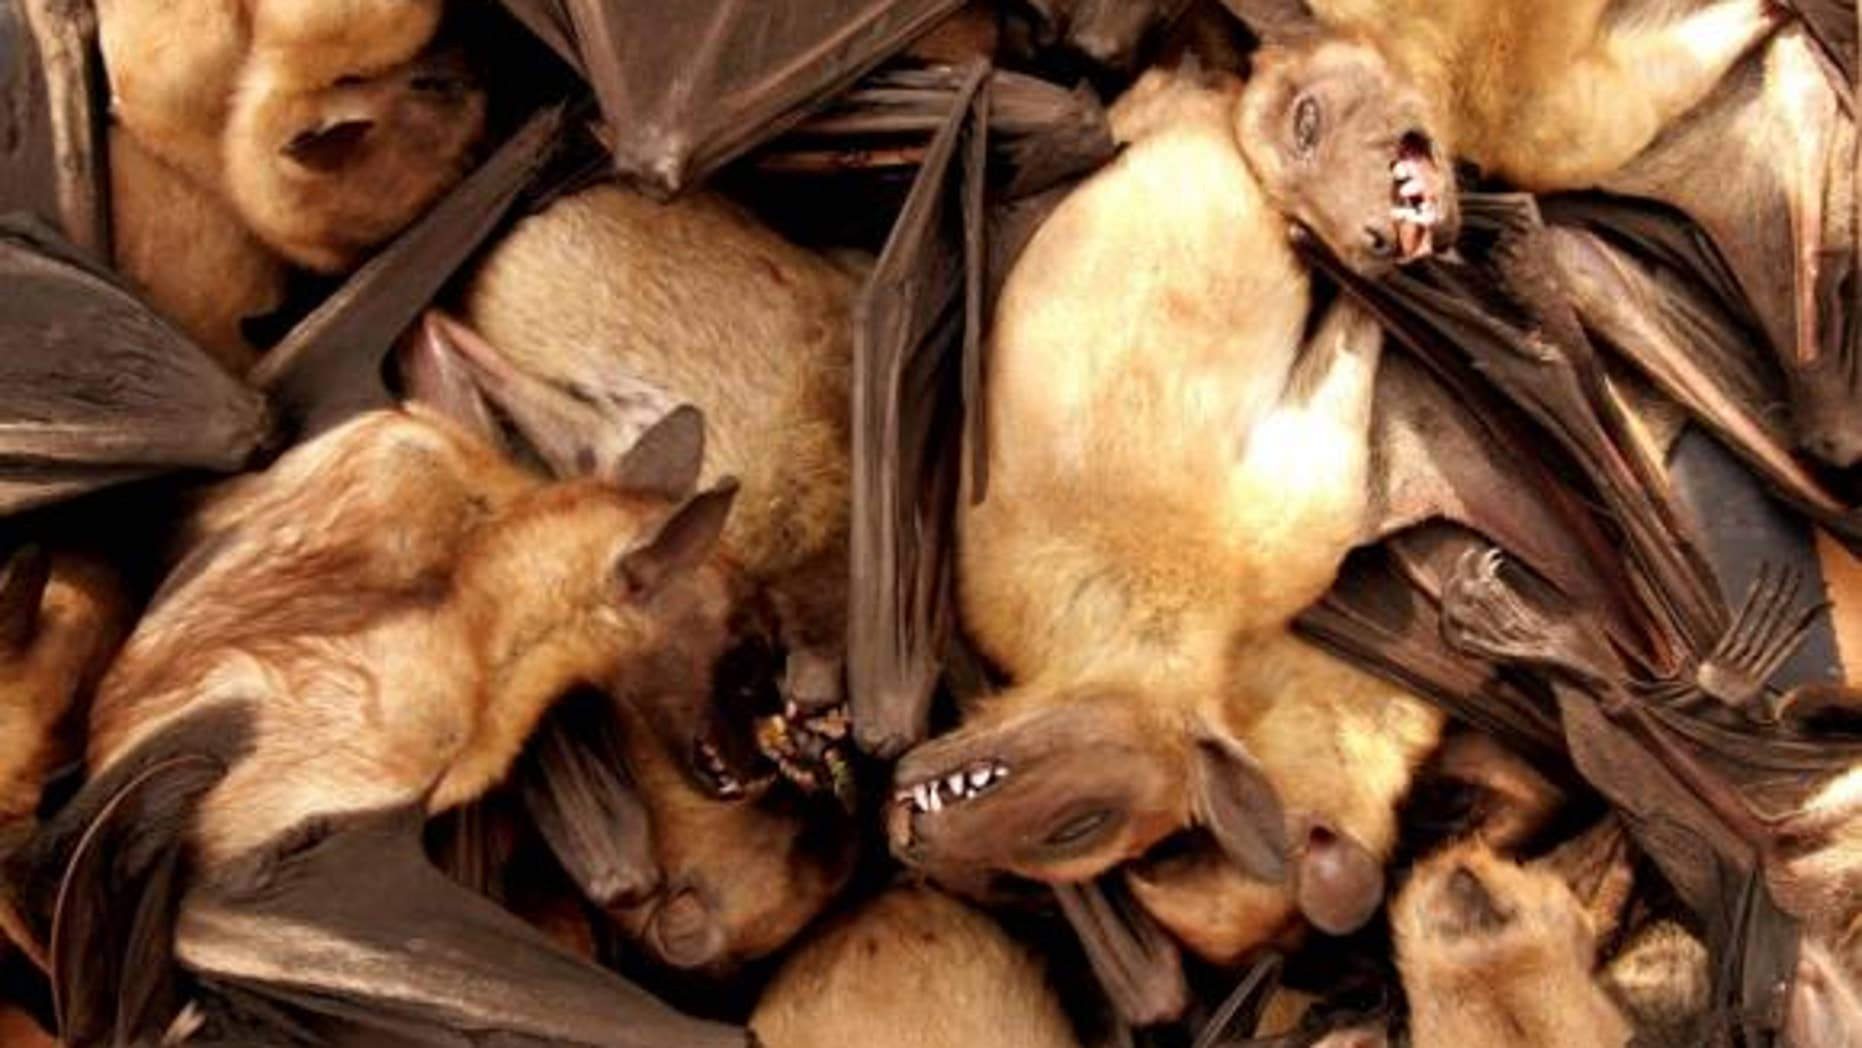 Fruit bats are seen for sale at a food market in Brazzavile, Republic of Congo, in this file photograph.